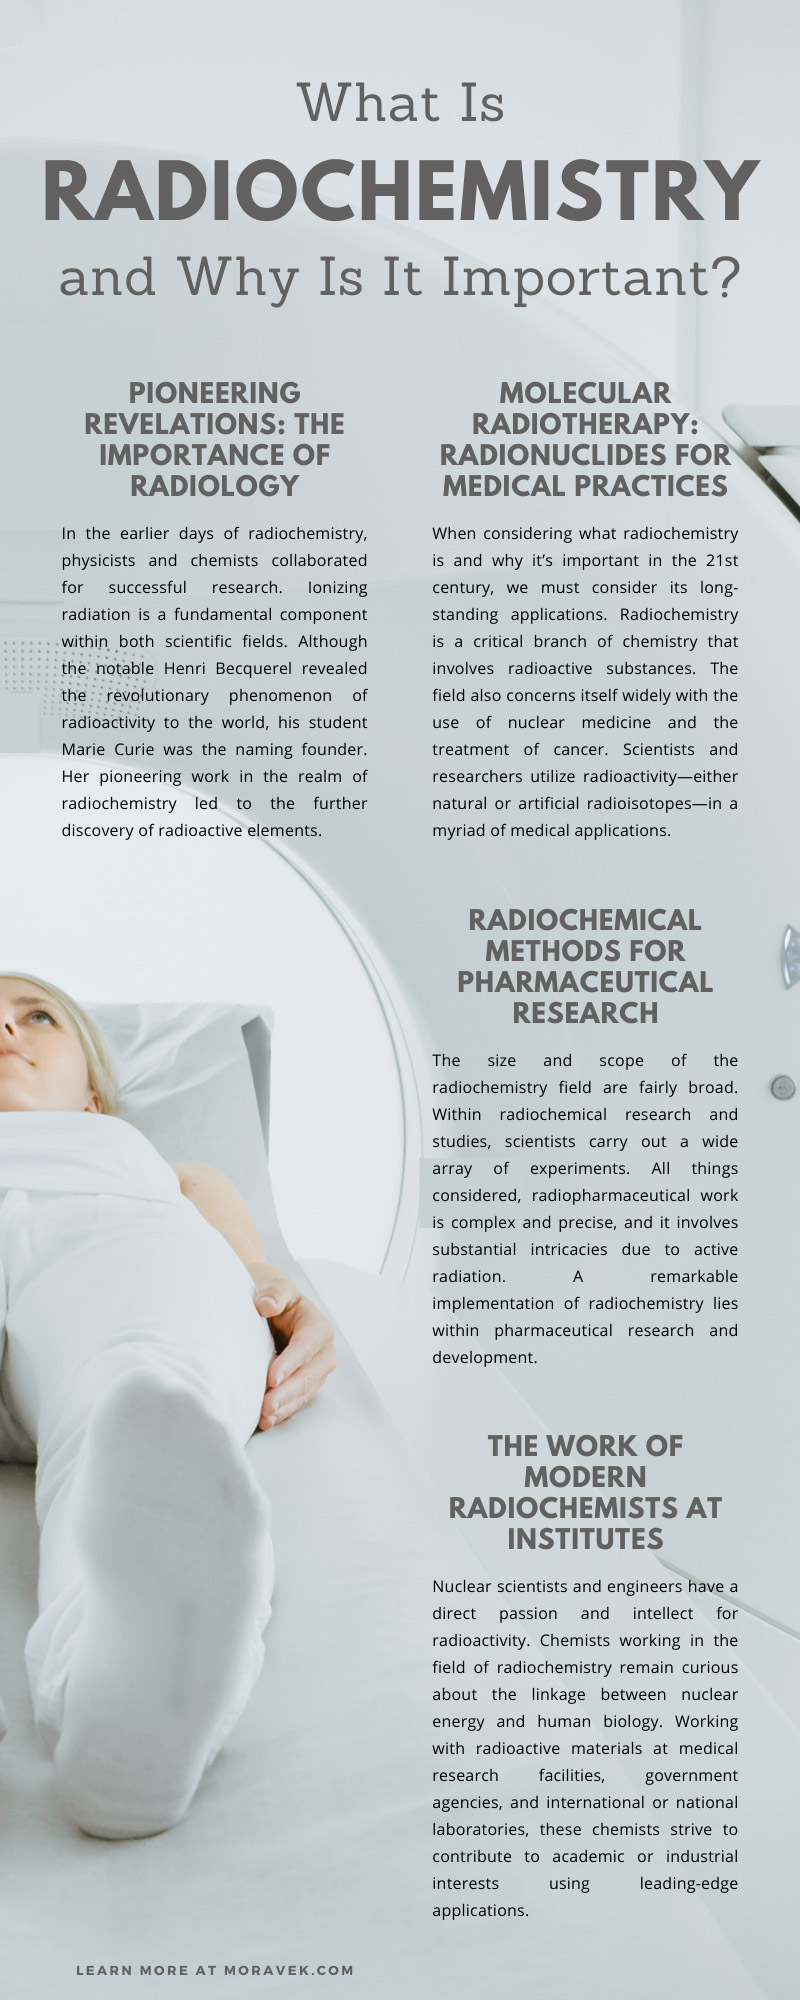 What Is Radiochemistry and Why Is It Important?